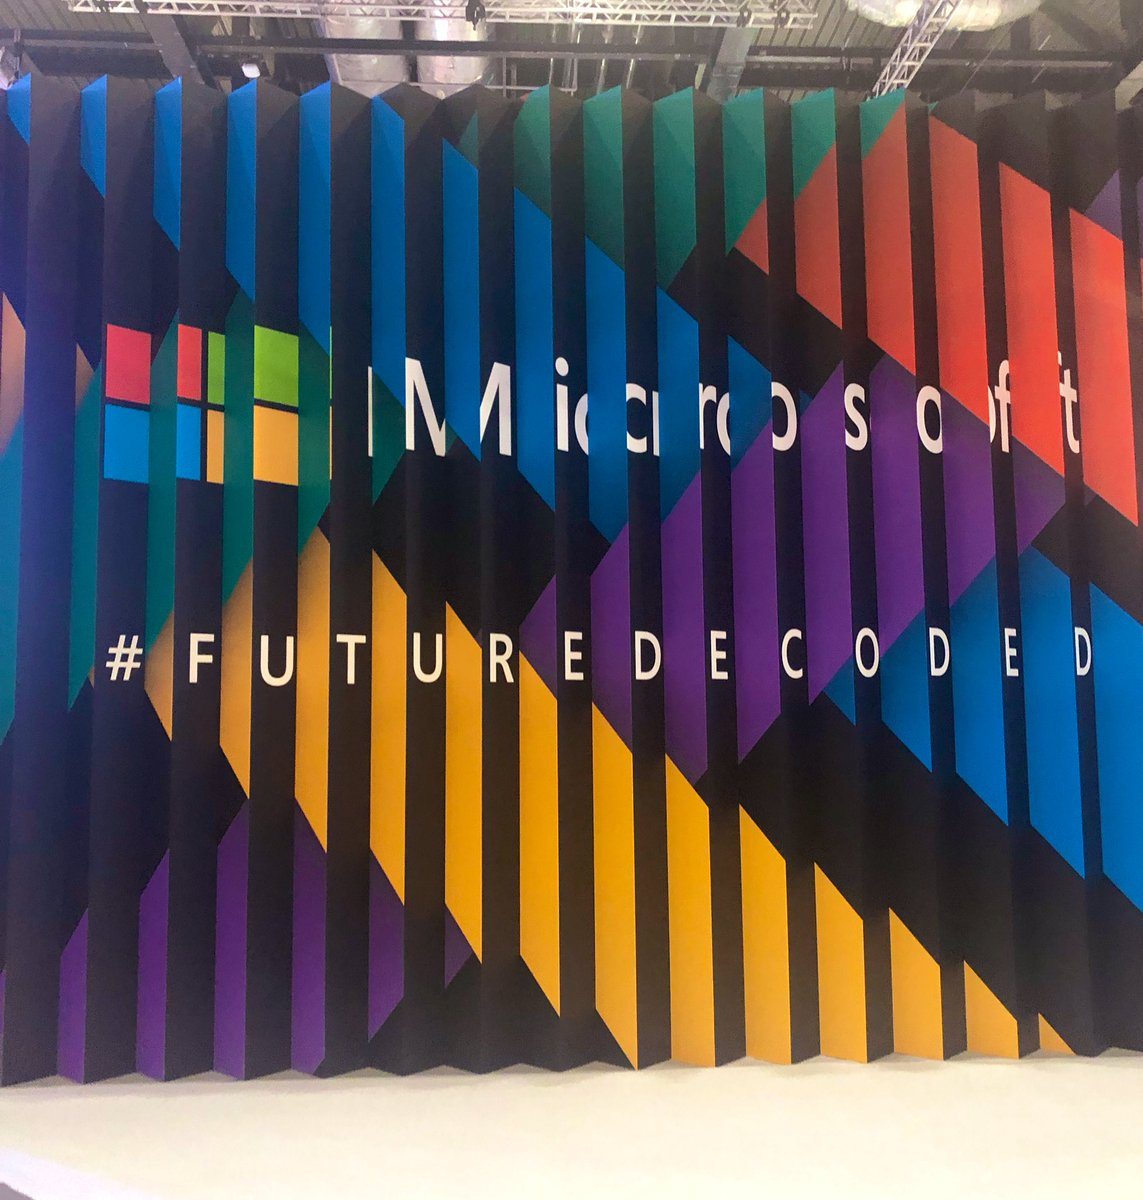 Today, we've been at @Microsoft #FutureDecoded hearing about how #AIforGood can protect endangered species & preserve rare languages, how high-performing @F1 cars at @redbullracing are built and how to better manage mental wellbeing in the digital workplace.  #AI #Tech